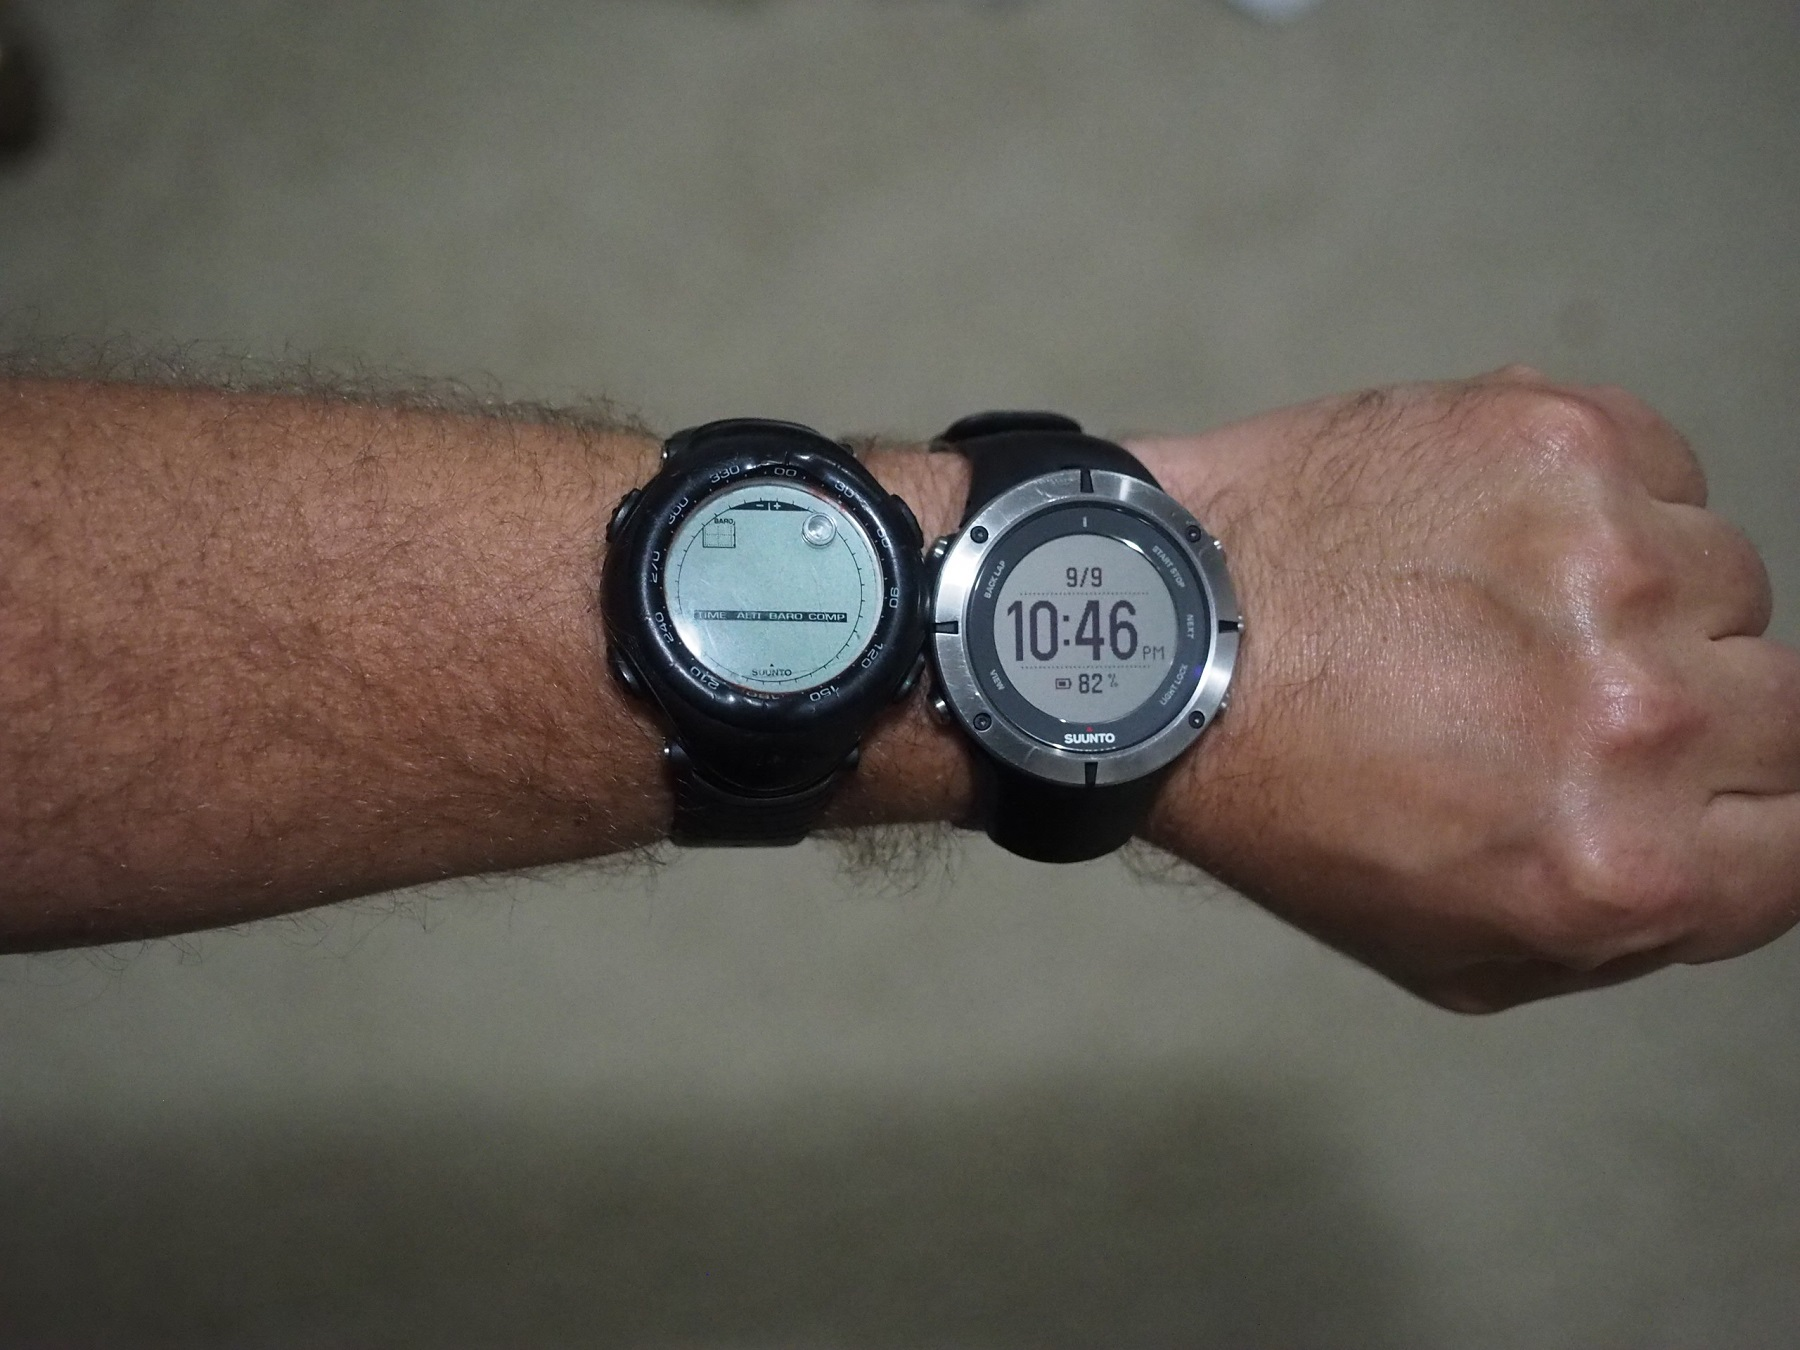 Suunto Mediocre Mountaineering Ambit3 Peak Sapphire Black Hr Gps Watch For Outdoor Sports Vector On Left Ambit 2 Right